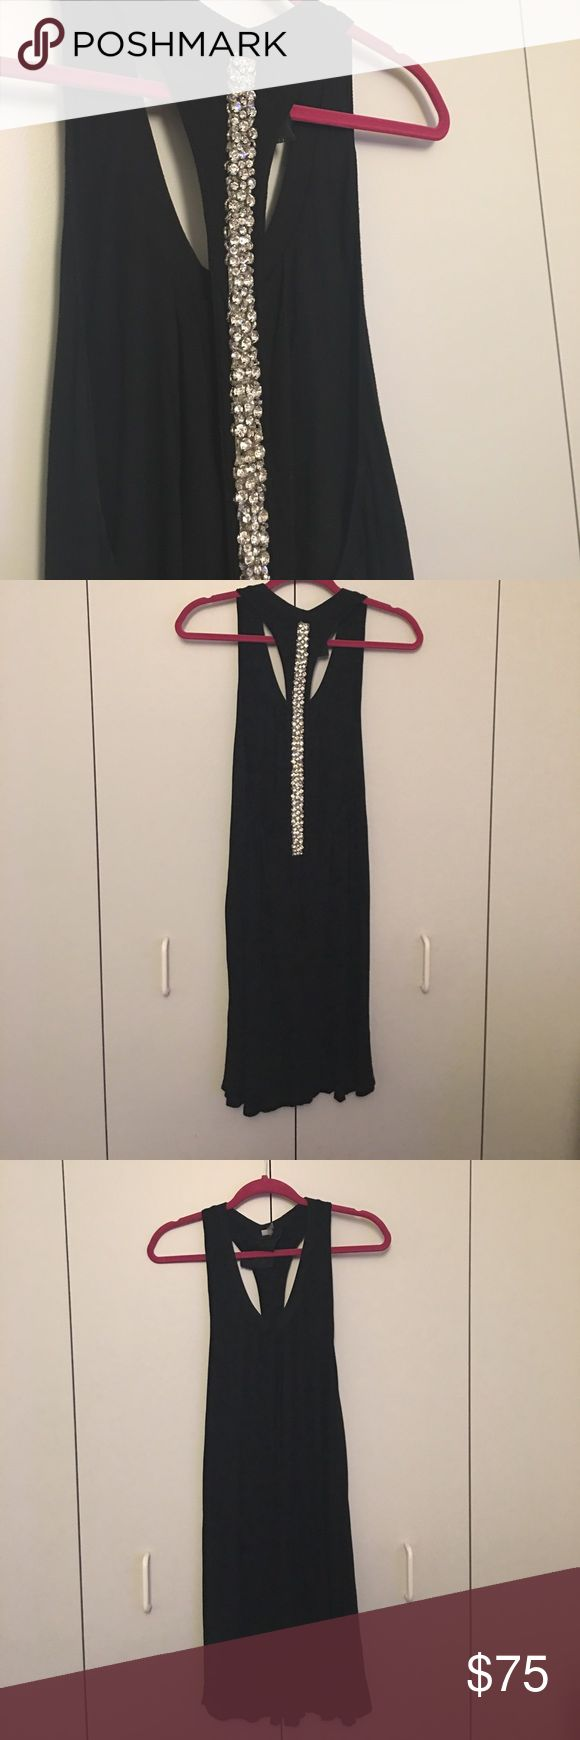 Young, Fabulous, and Broke crystal racerback dress GORGEOUS racerback dress from designer Young Fabulous and Broke. Easy shape, black stretch fabric with very detail crystal beading on the back!! Perfect as a night-out dress or even a super luxe cover up! Extra small, but fits like a small/medium. Young Fabulous & Broke Dresses Backless